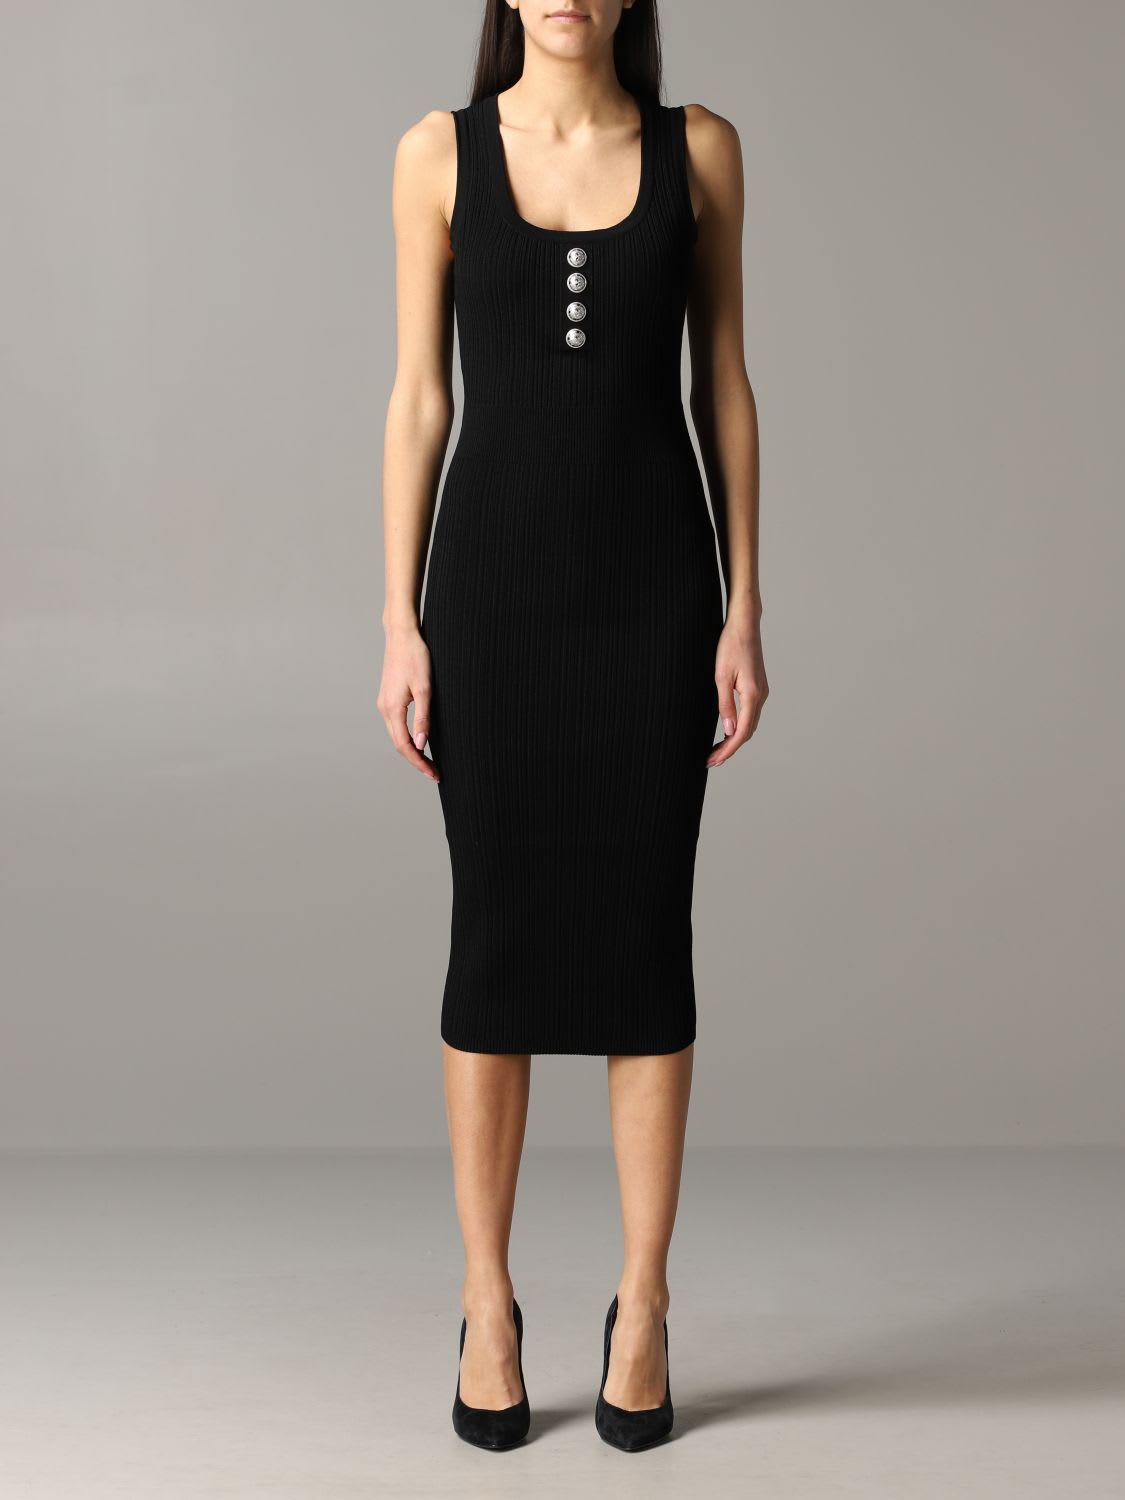 Buy Balmain Dress Balmain Sheath Dress With Jewel Buttons online, shop Balmain with free shipping